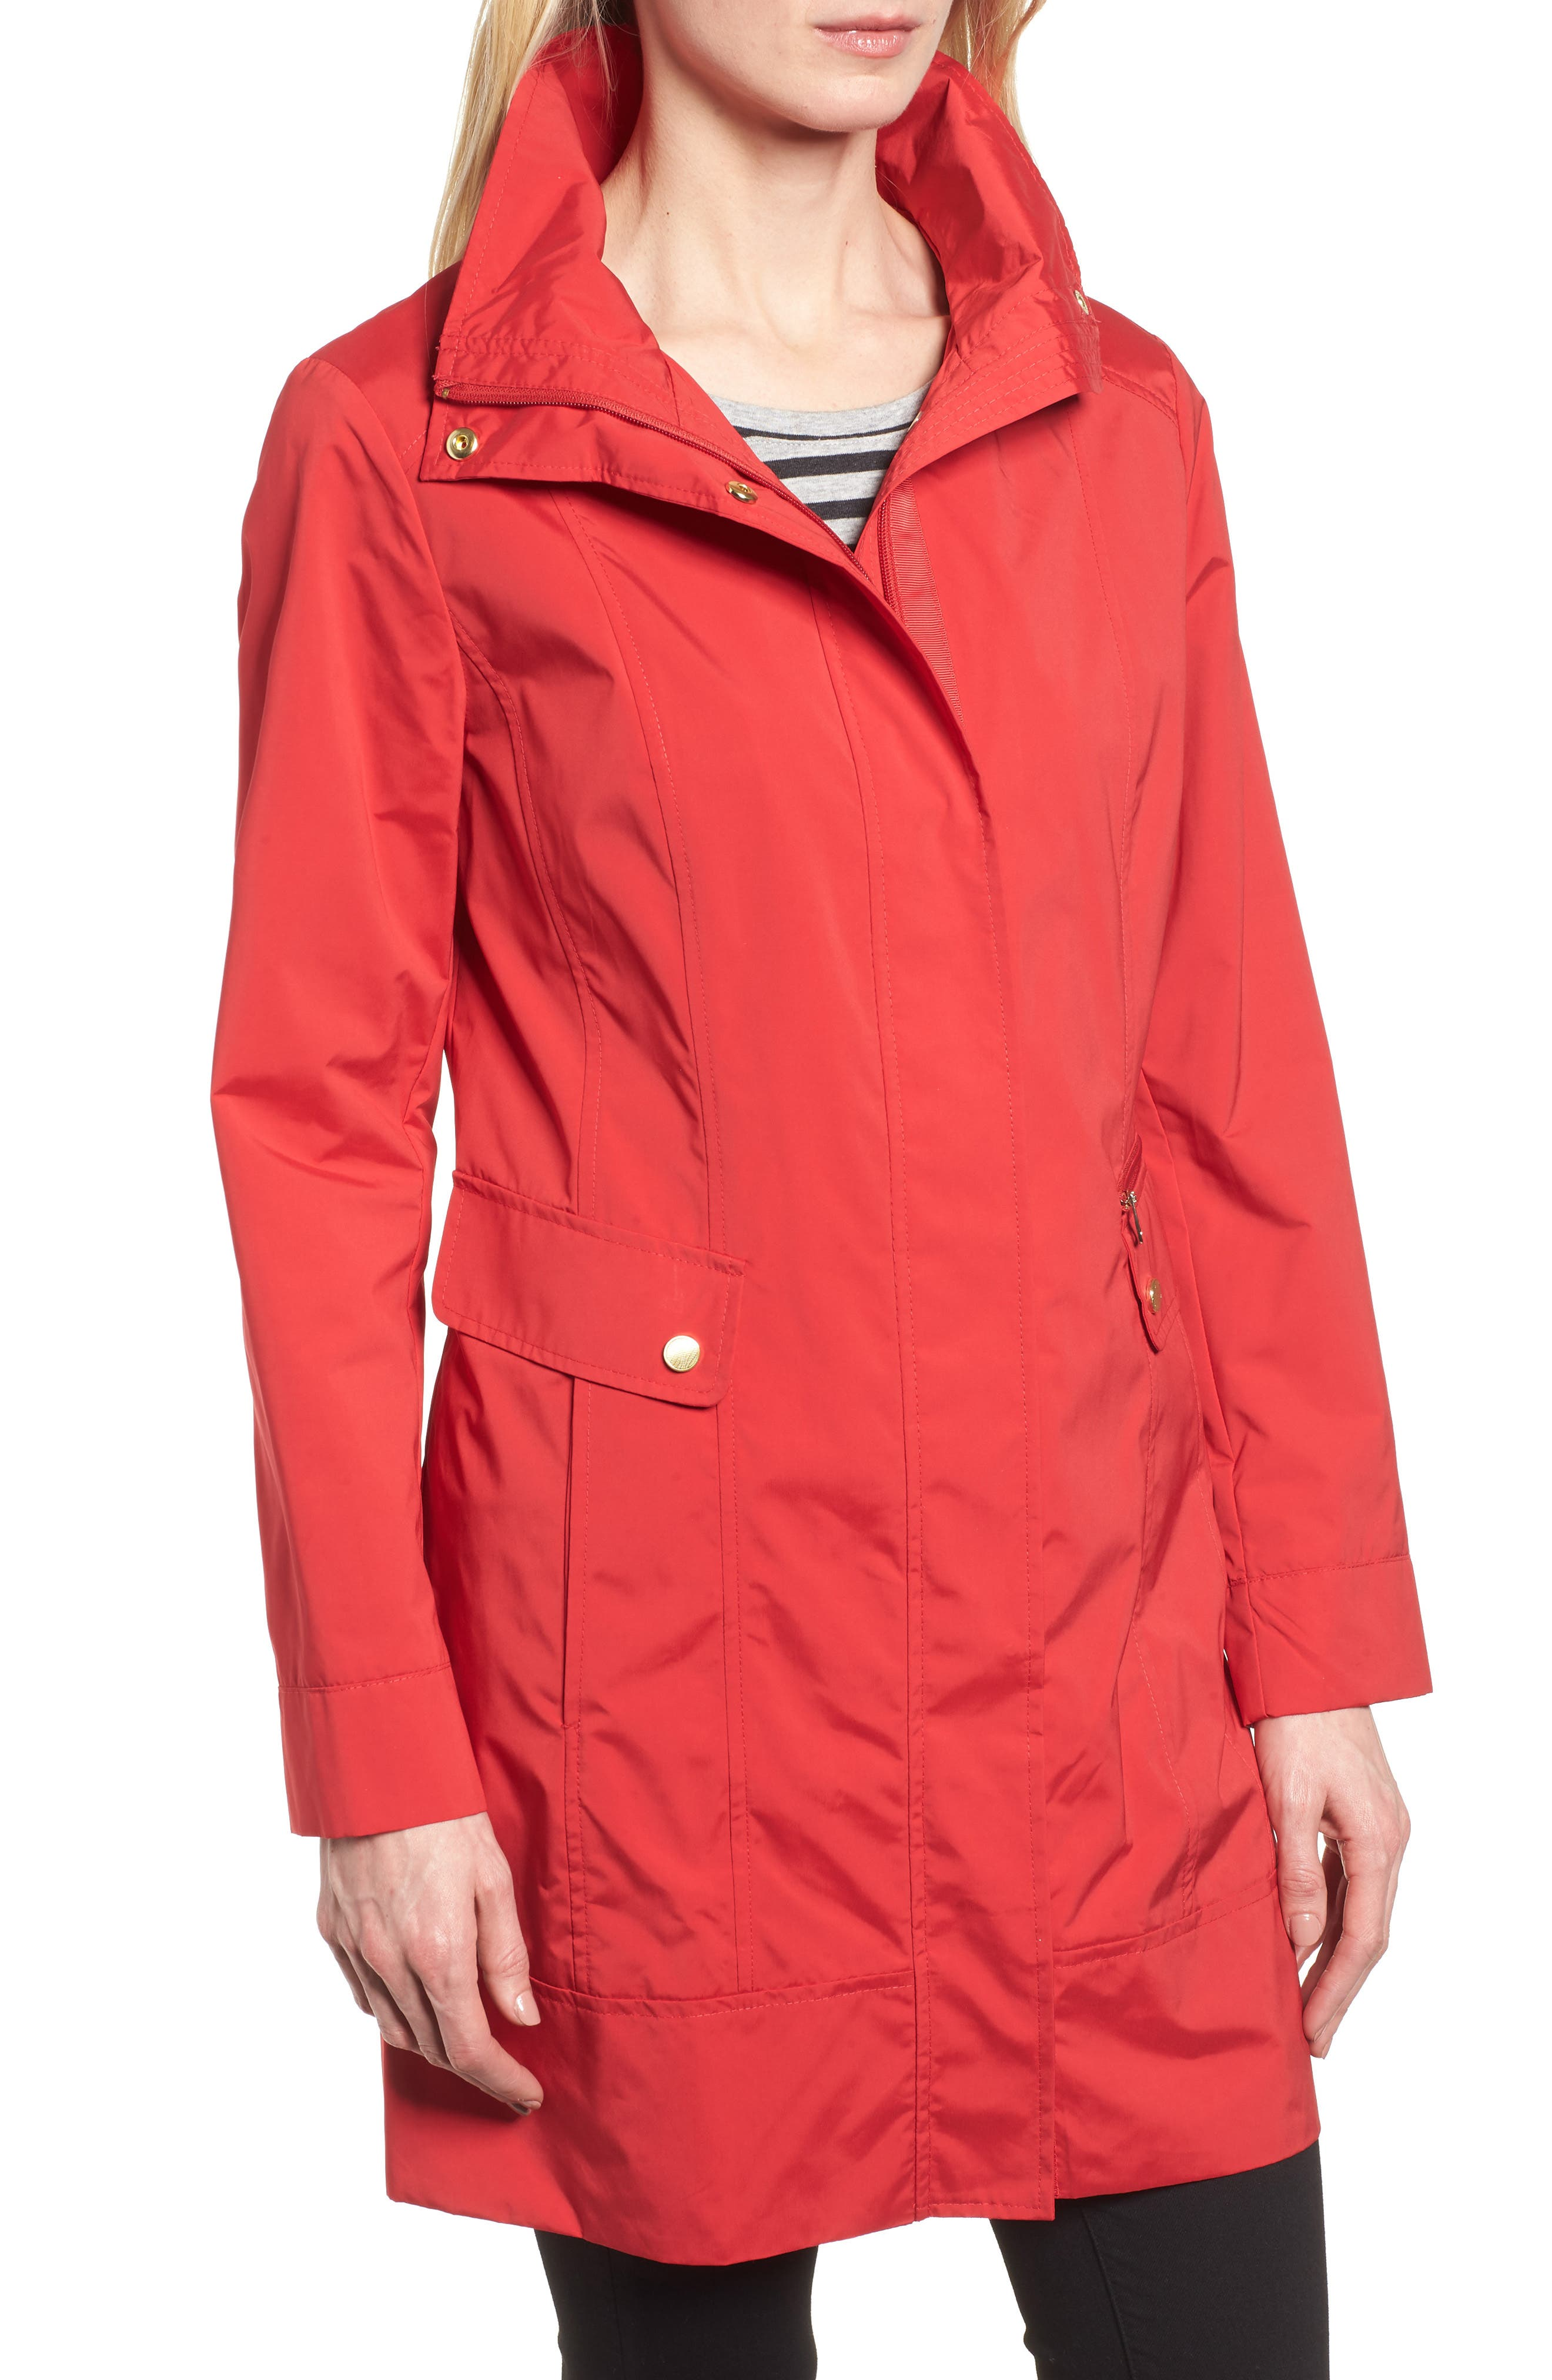 Back Bow Packable Hooded Raincoat,                             Alternate thumbnail 4, color,                             Red